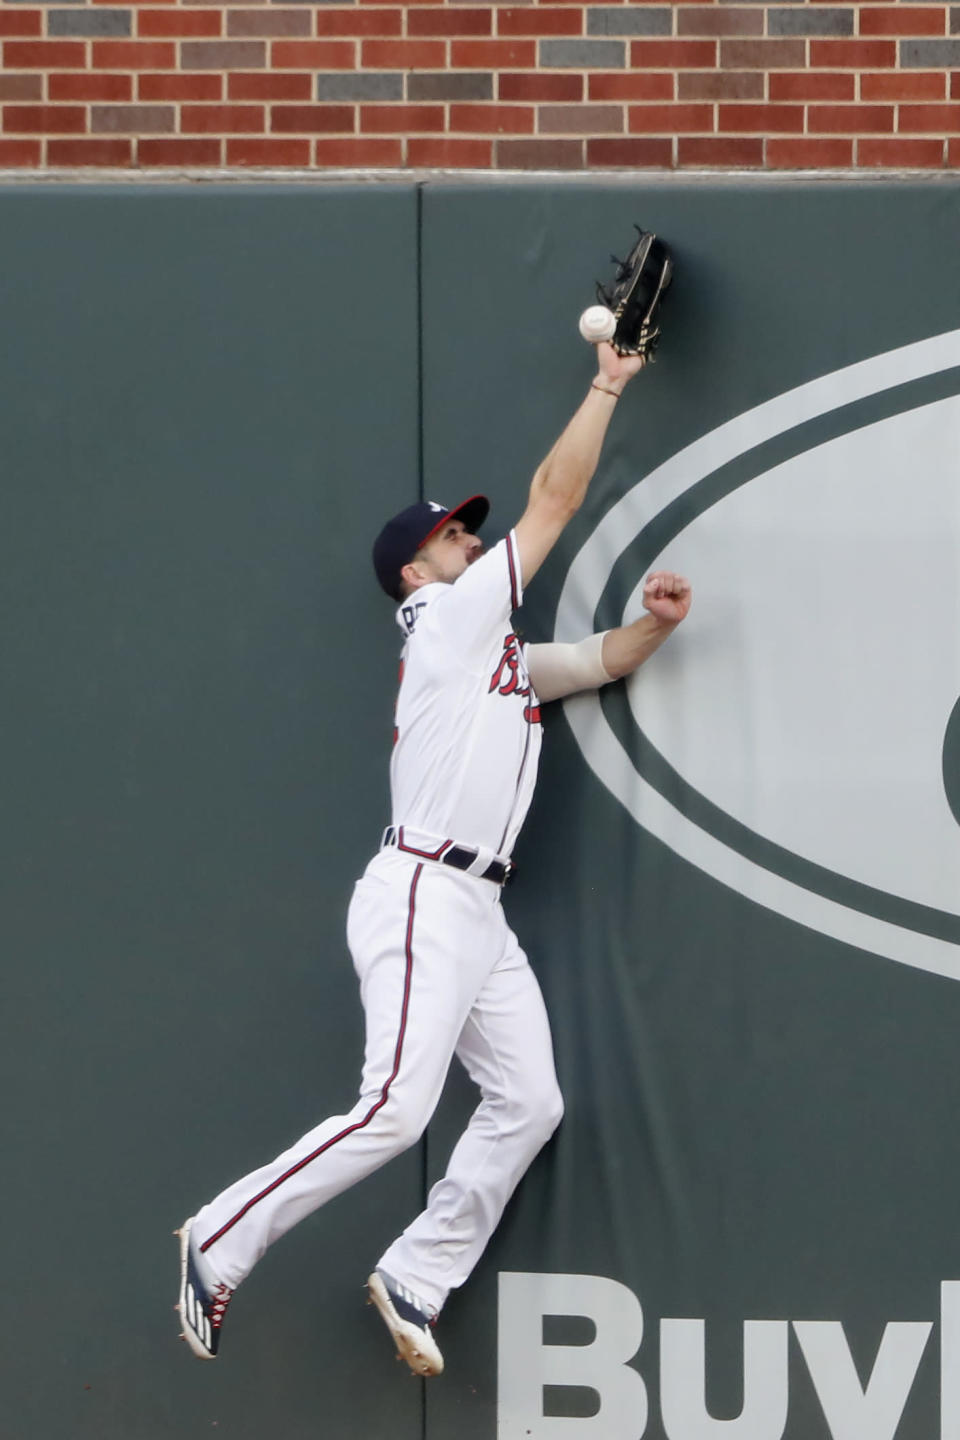 Atlanta Braves center fielder Ender Inciarte (11) can't reach a ball hit for a double by Toronto Blue Jays' Vladimir Guerrero Jr. in the second inning of a baseball game Wednesday, Aug. 5, 2020, in Atlanta. (AP Photo/John Bazemore)